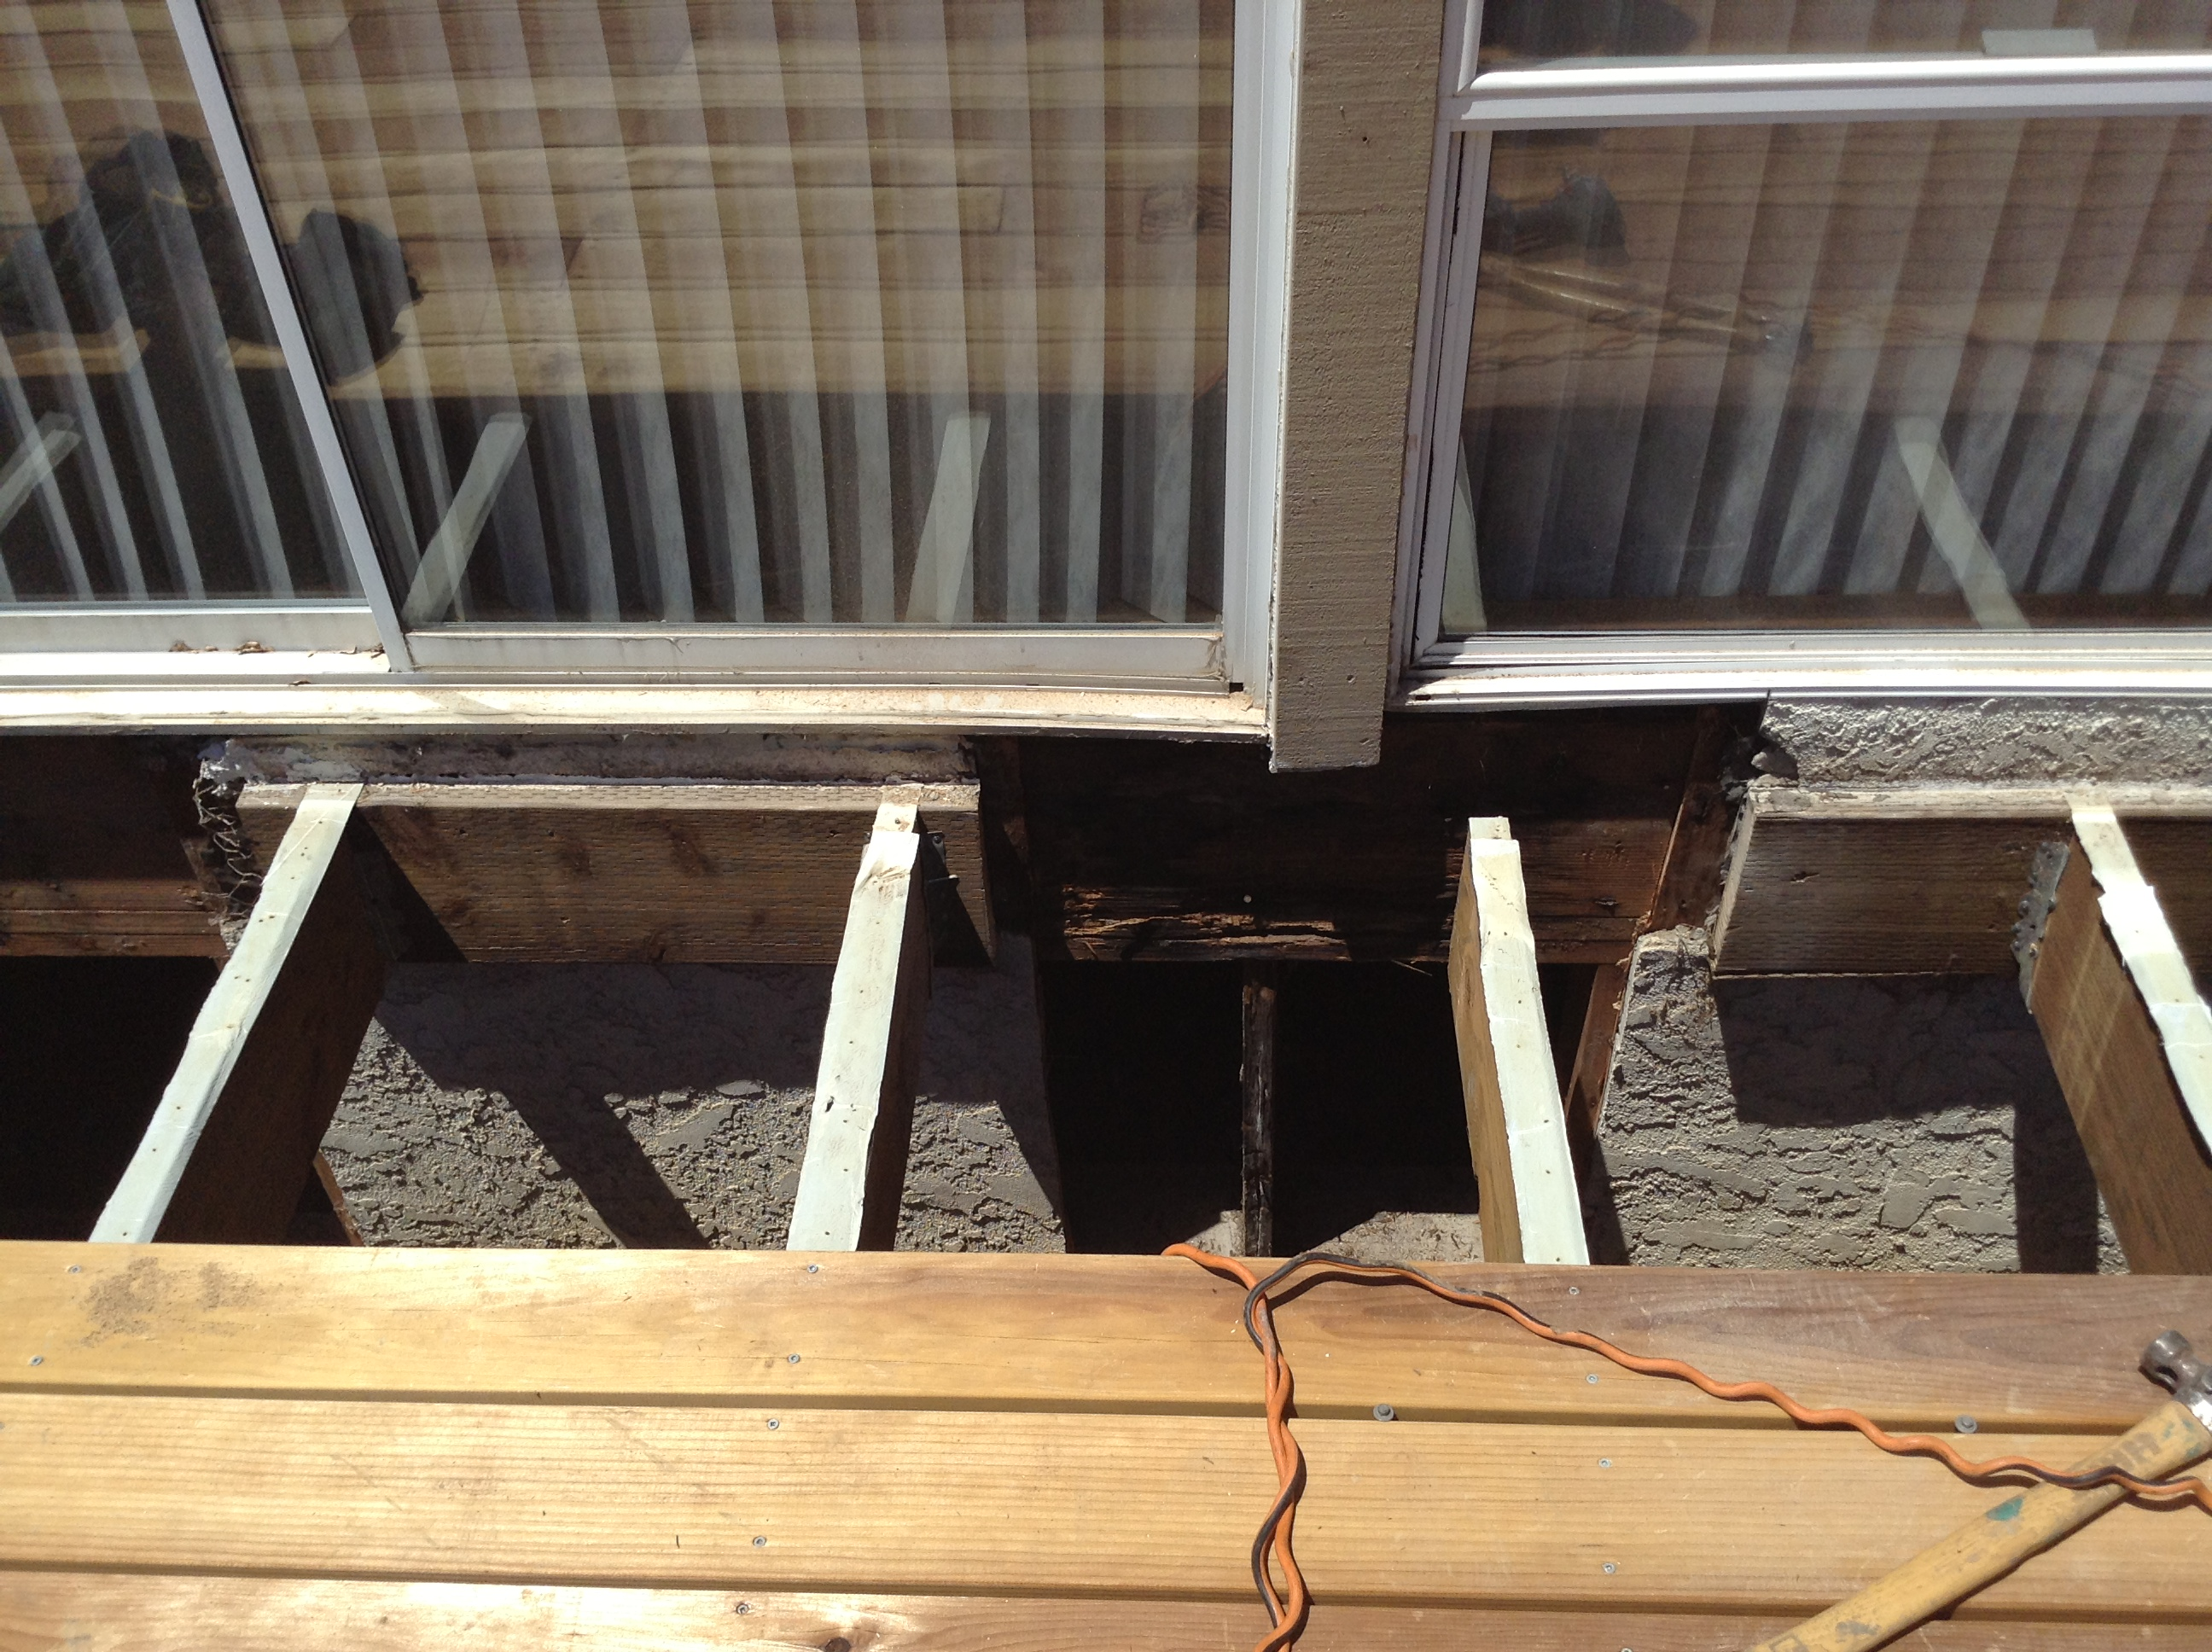 Dry Rot Replacement On Deck/Patio